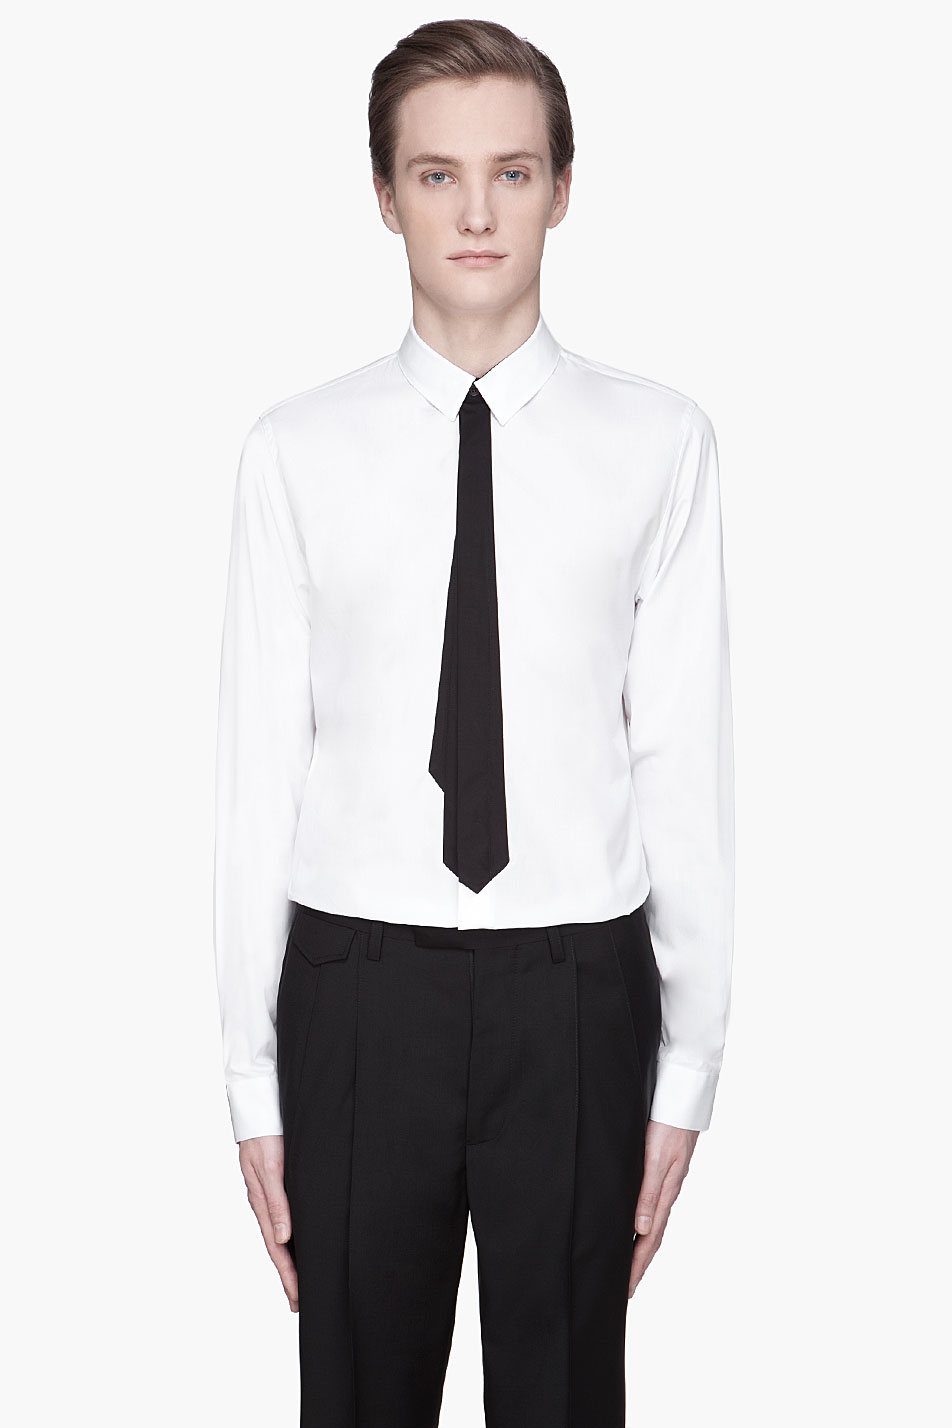 black tie and white shirt is shirt